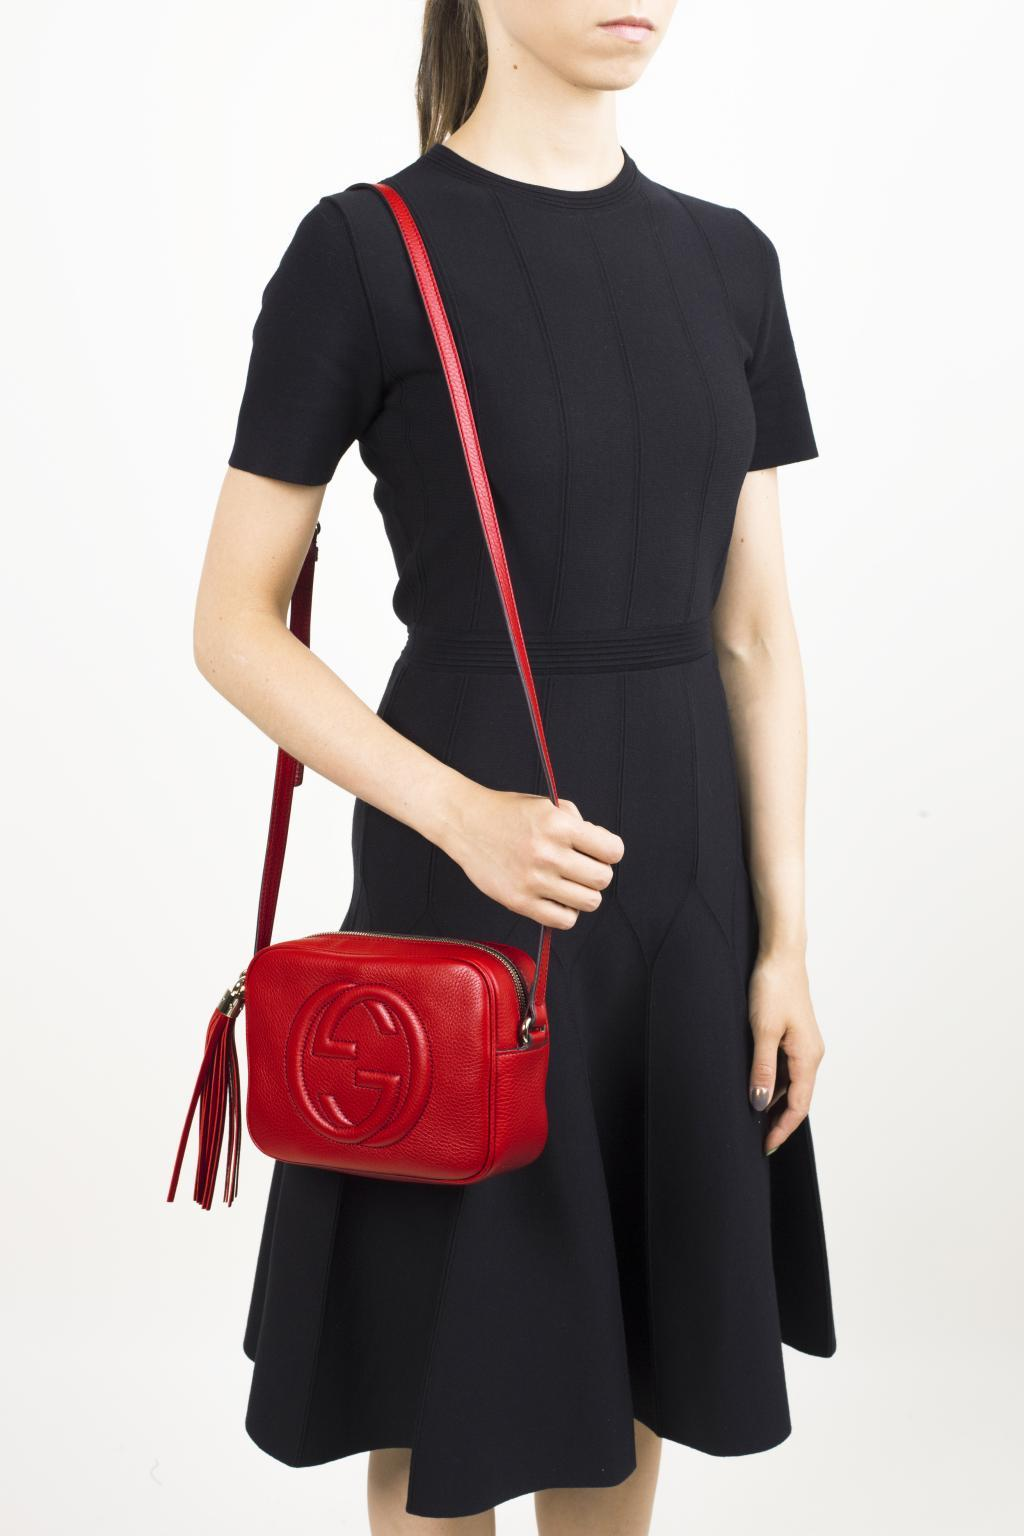 8700b270073 Gucci - Red  soho Disco  Crossbody Bag - Lyst. View fullscreen